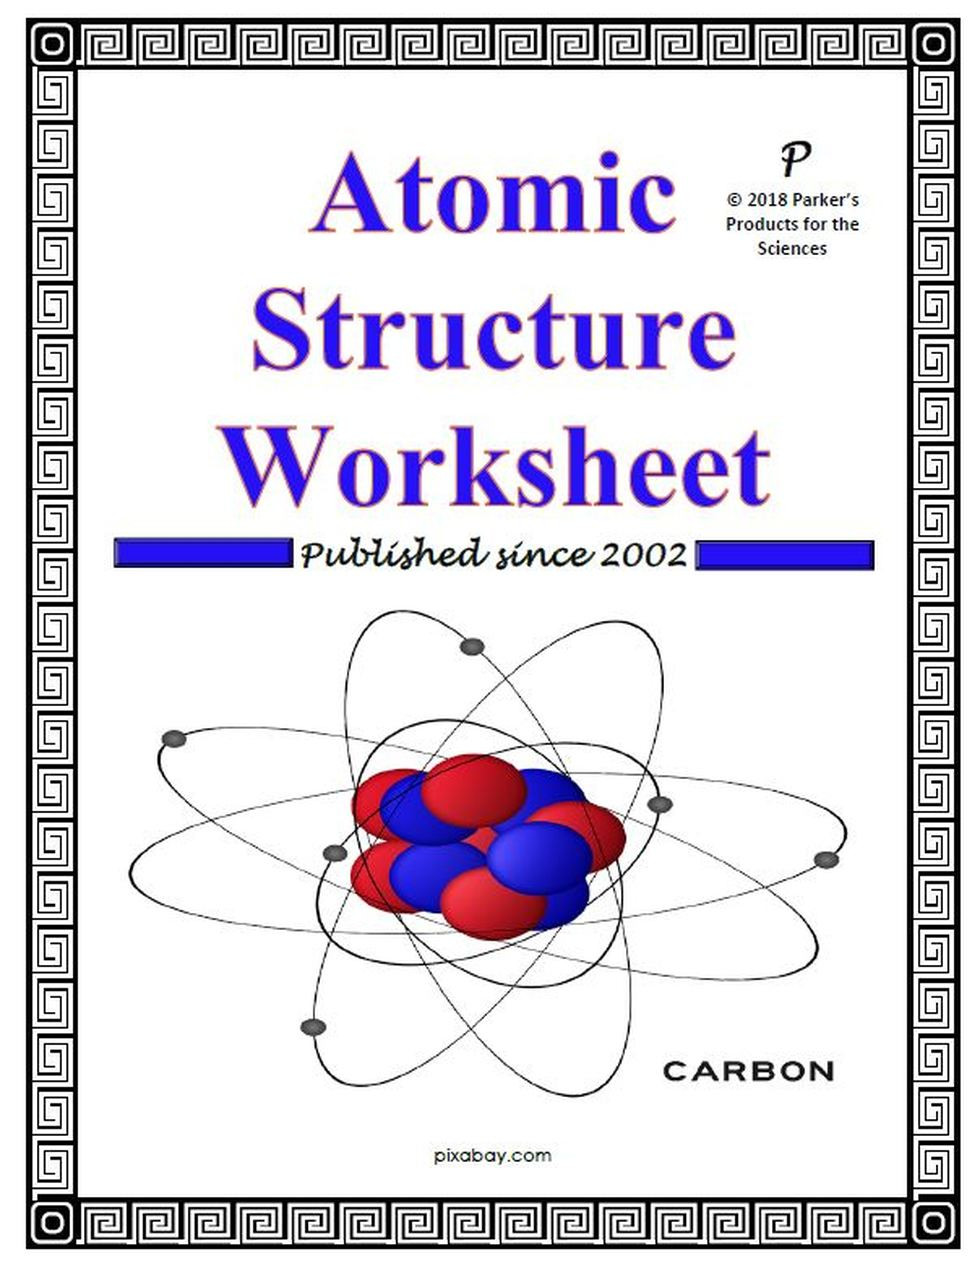 Atom Structure Worksheet Middle School atomic Structure Worksheet